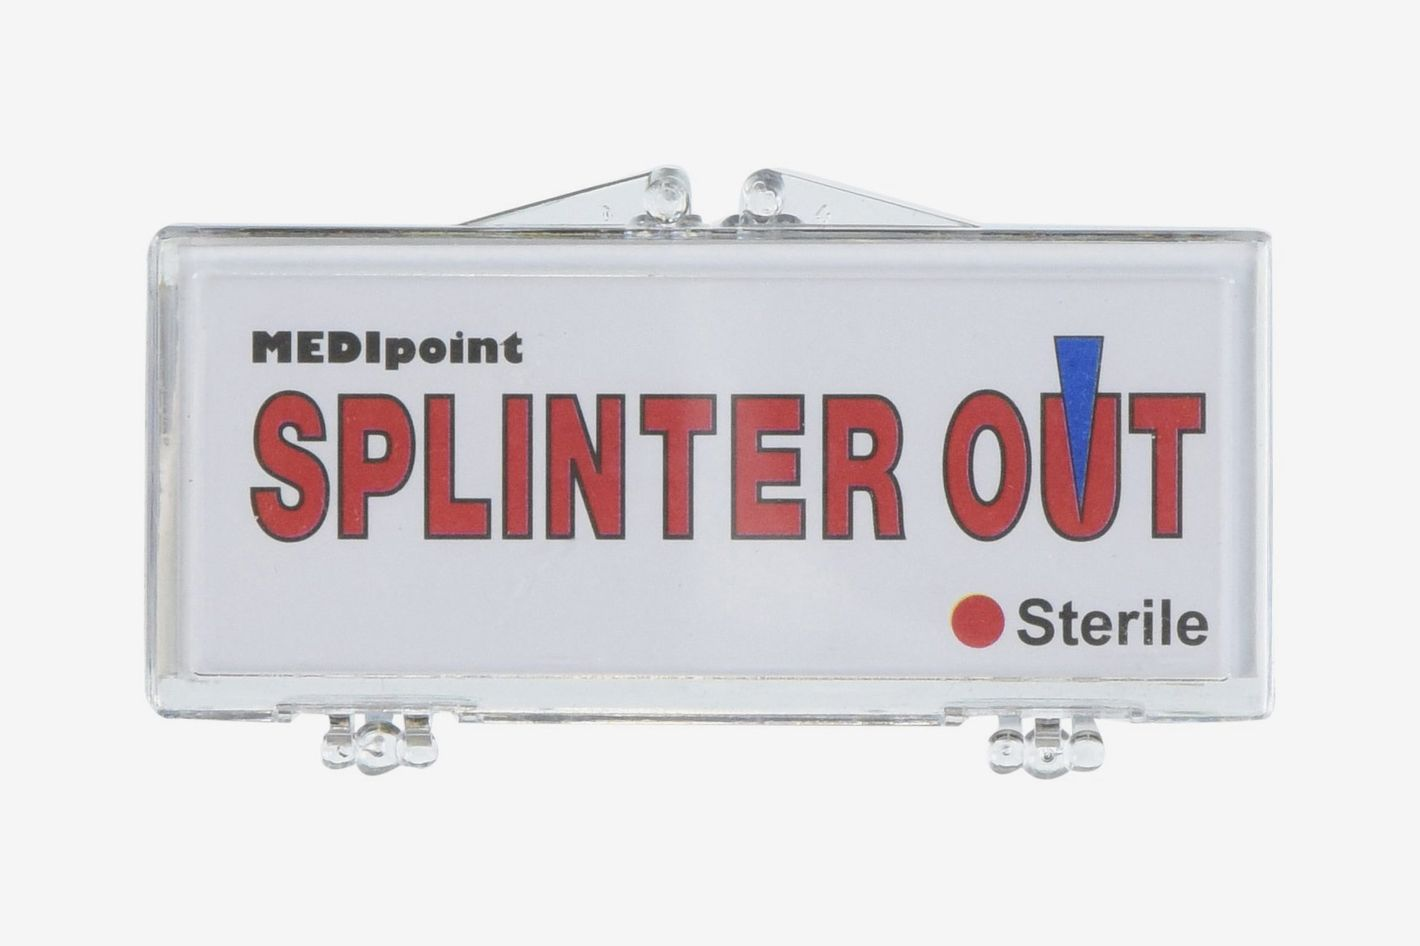 Medipoint Splinter Out Splinter Remover